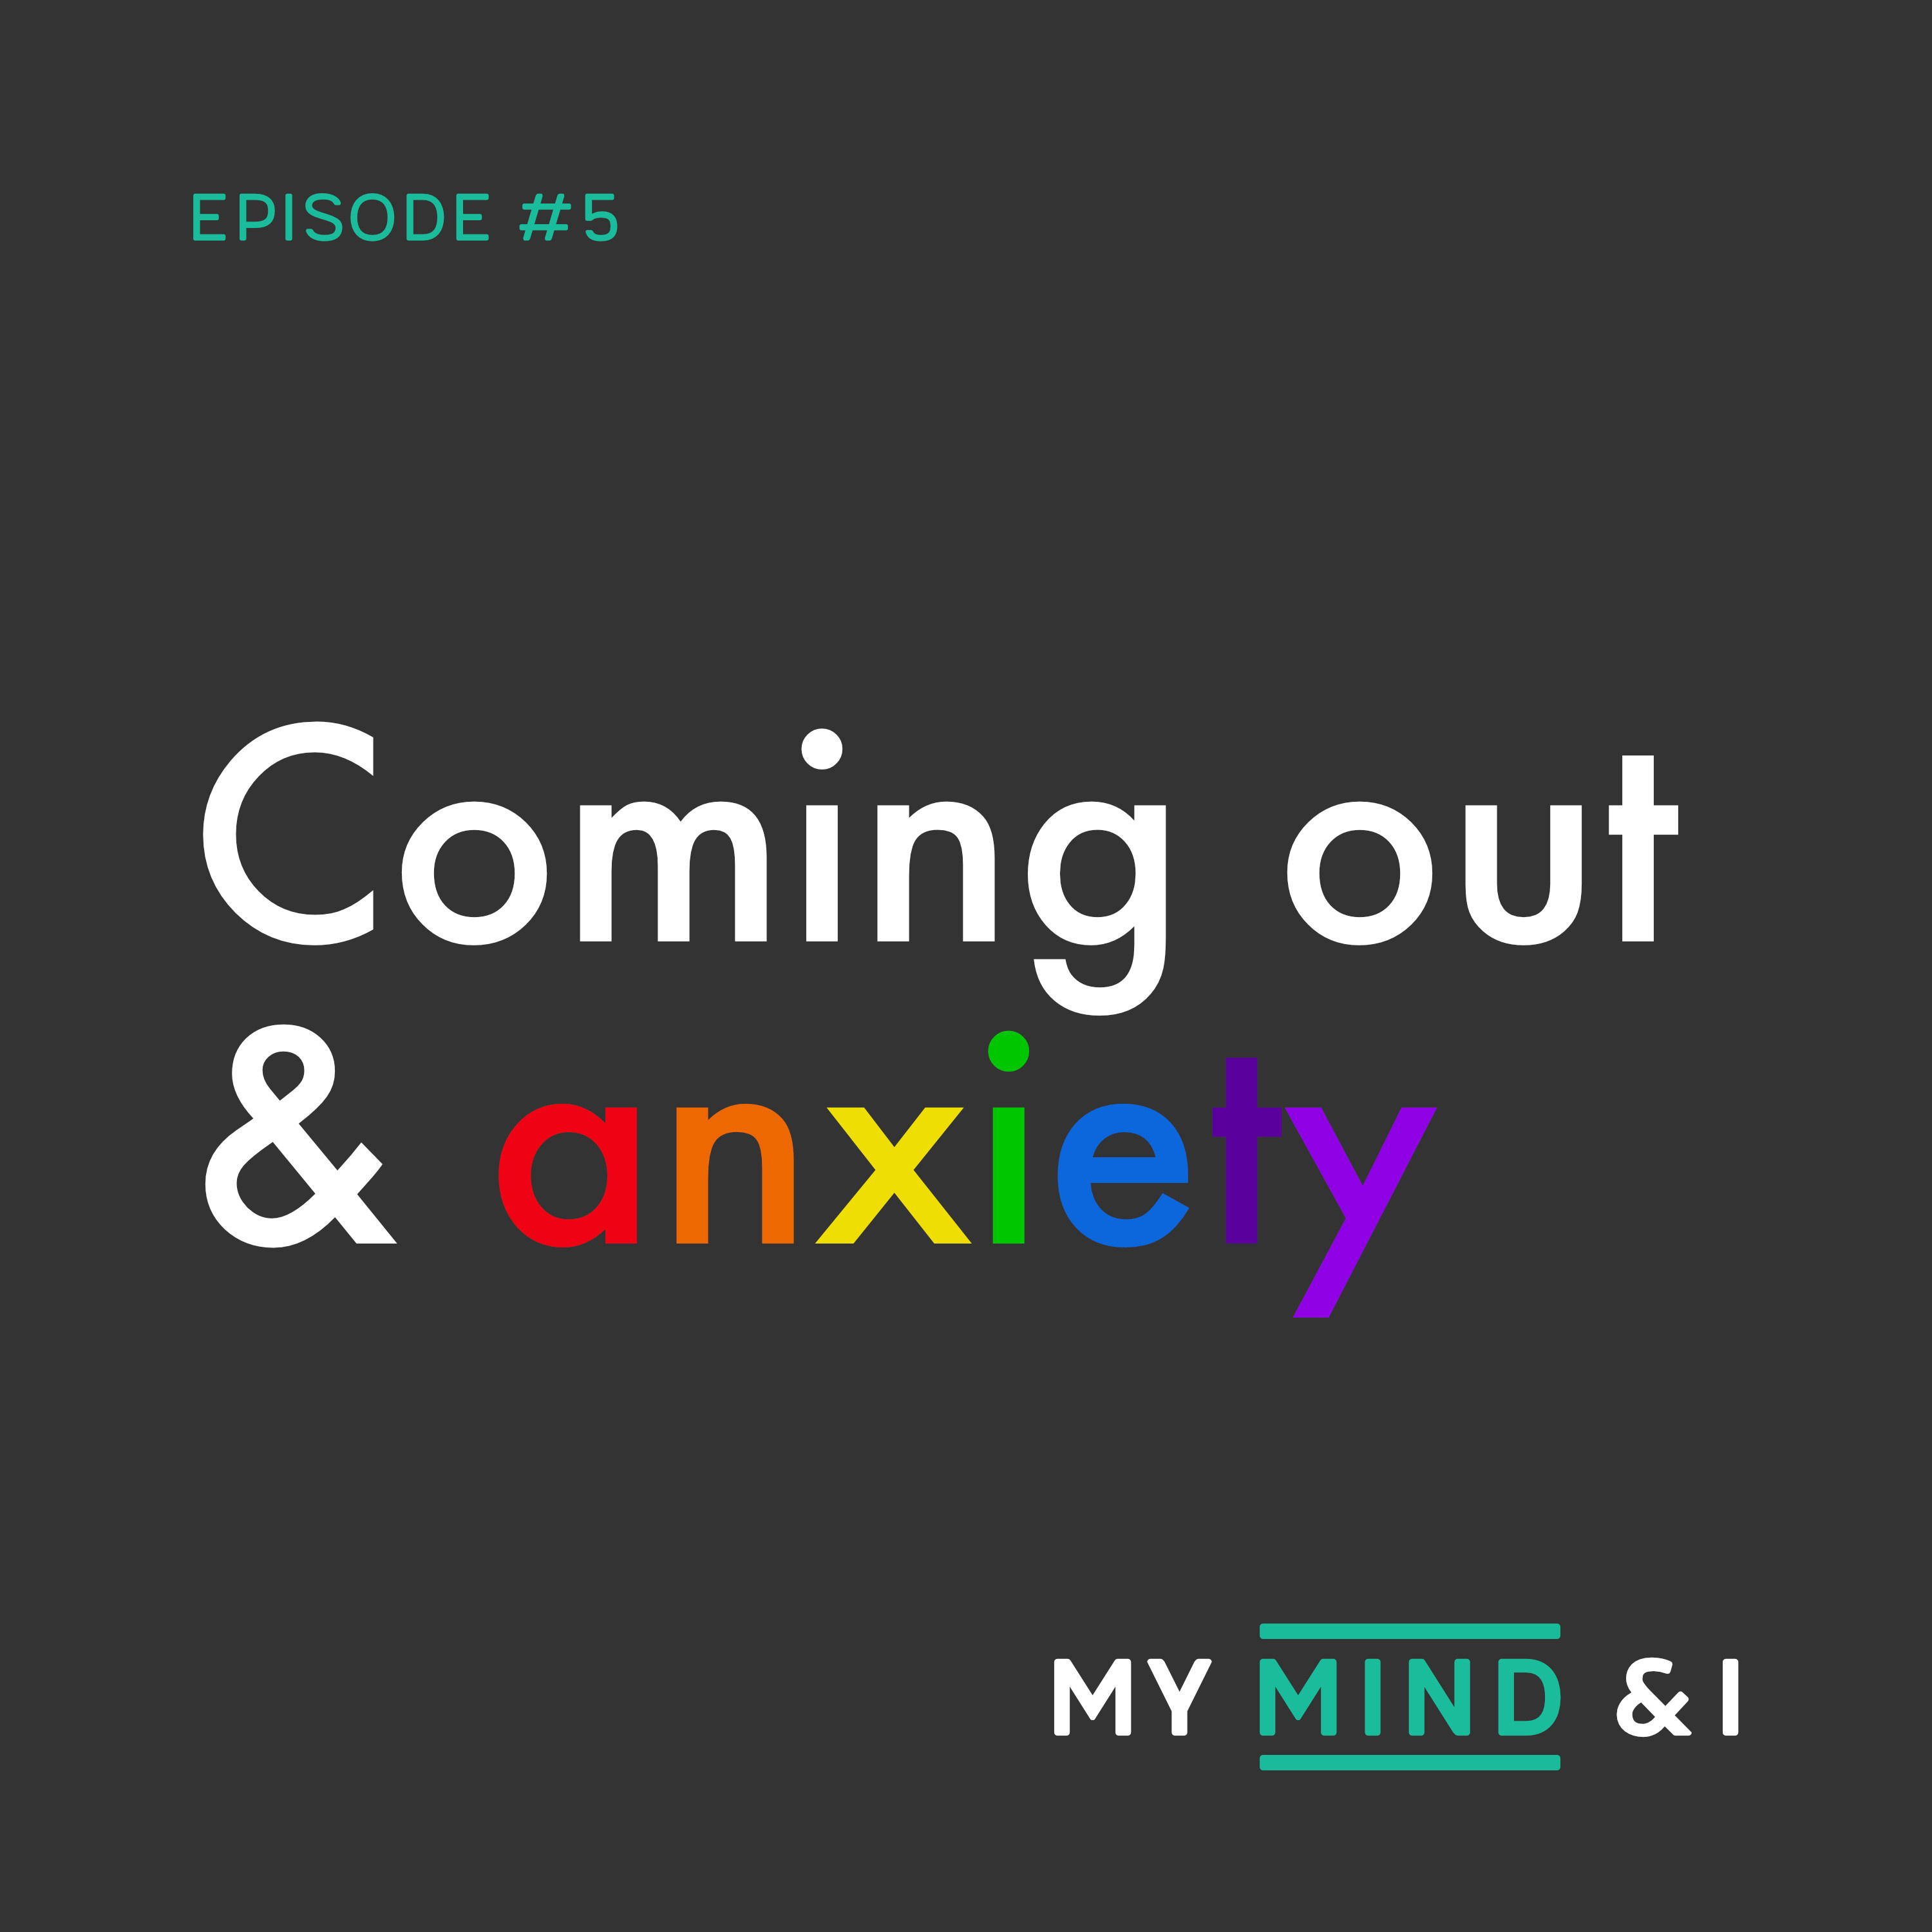 #5 Coming out & anxiety